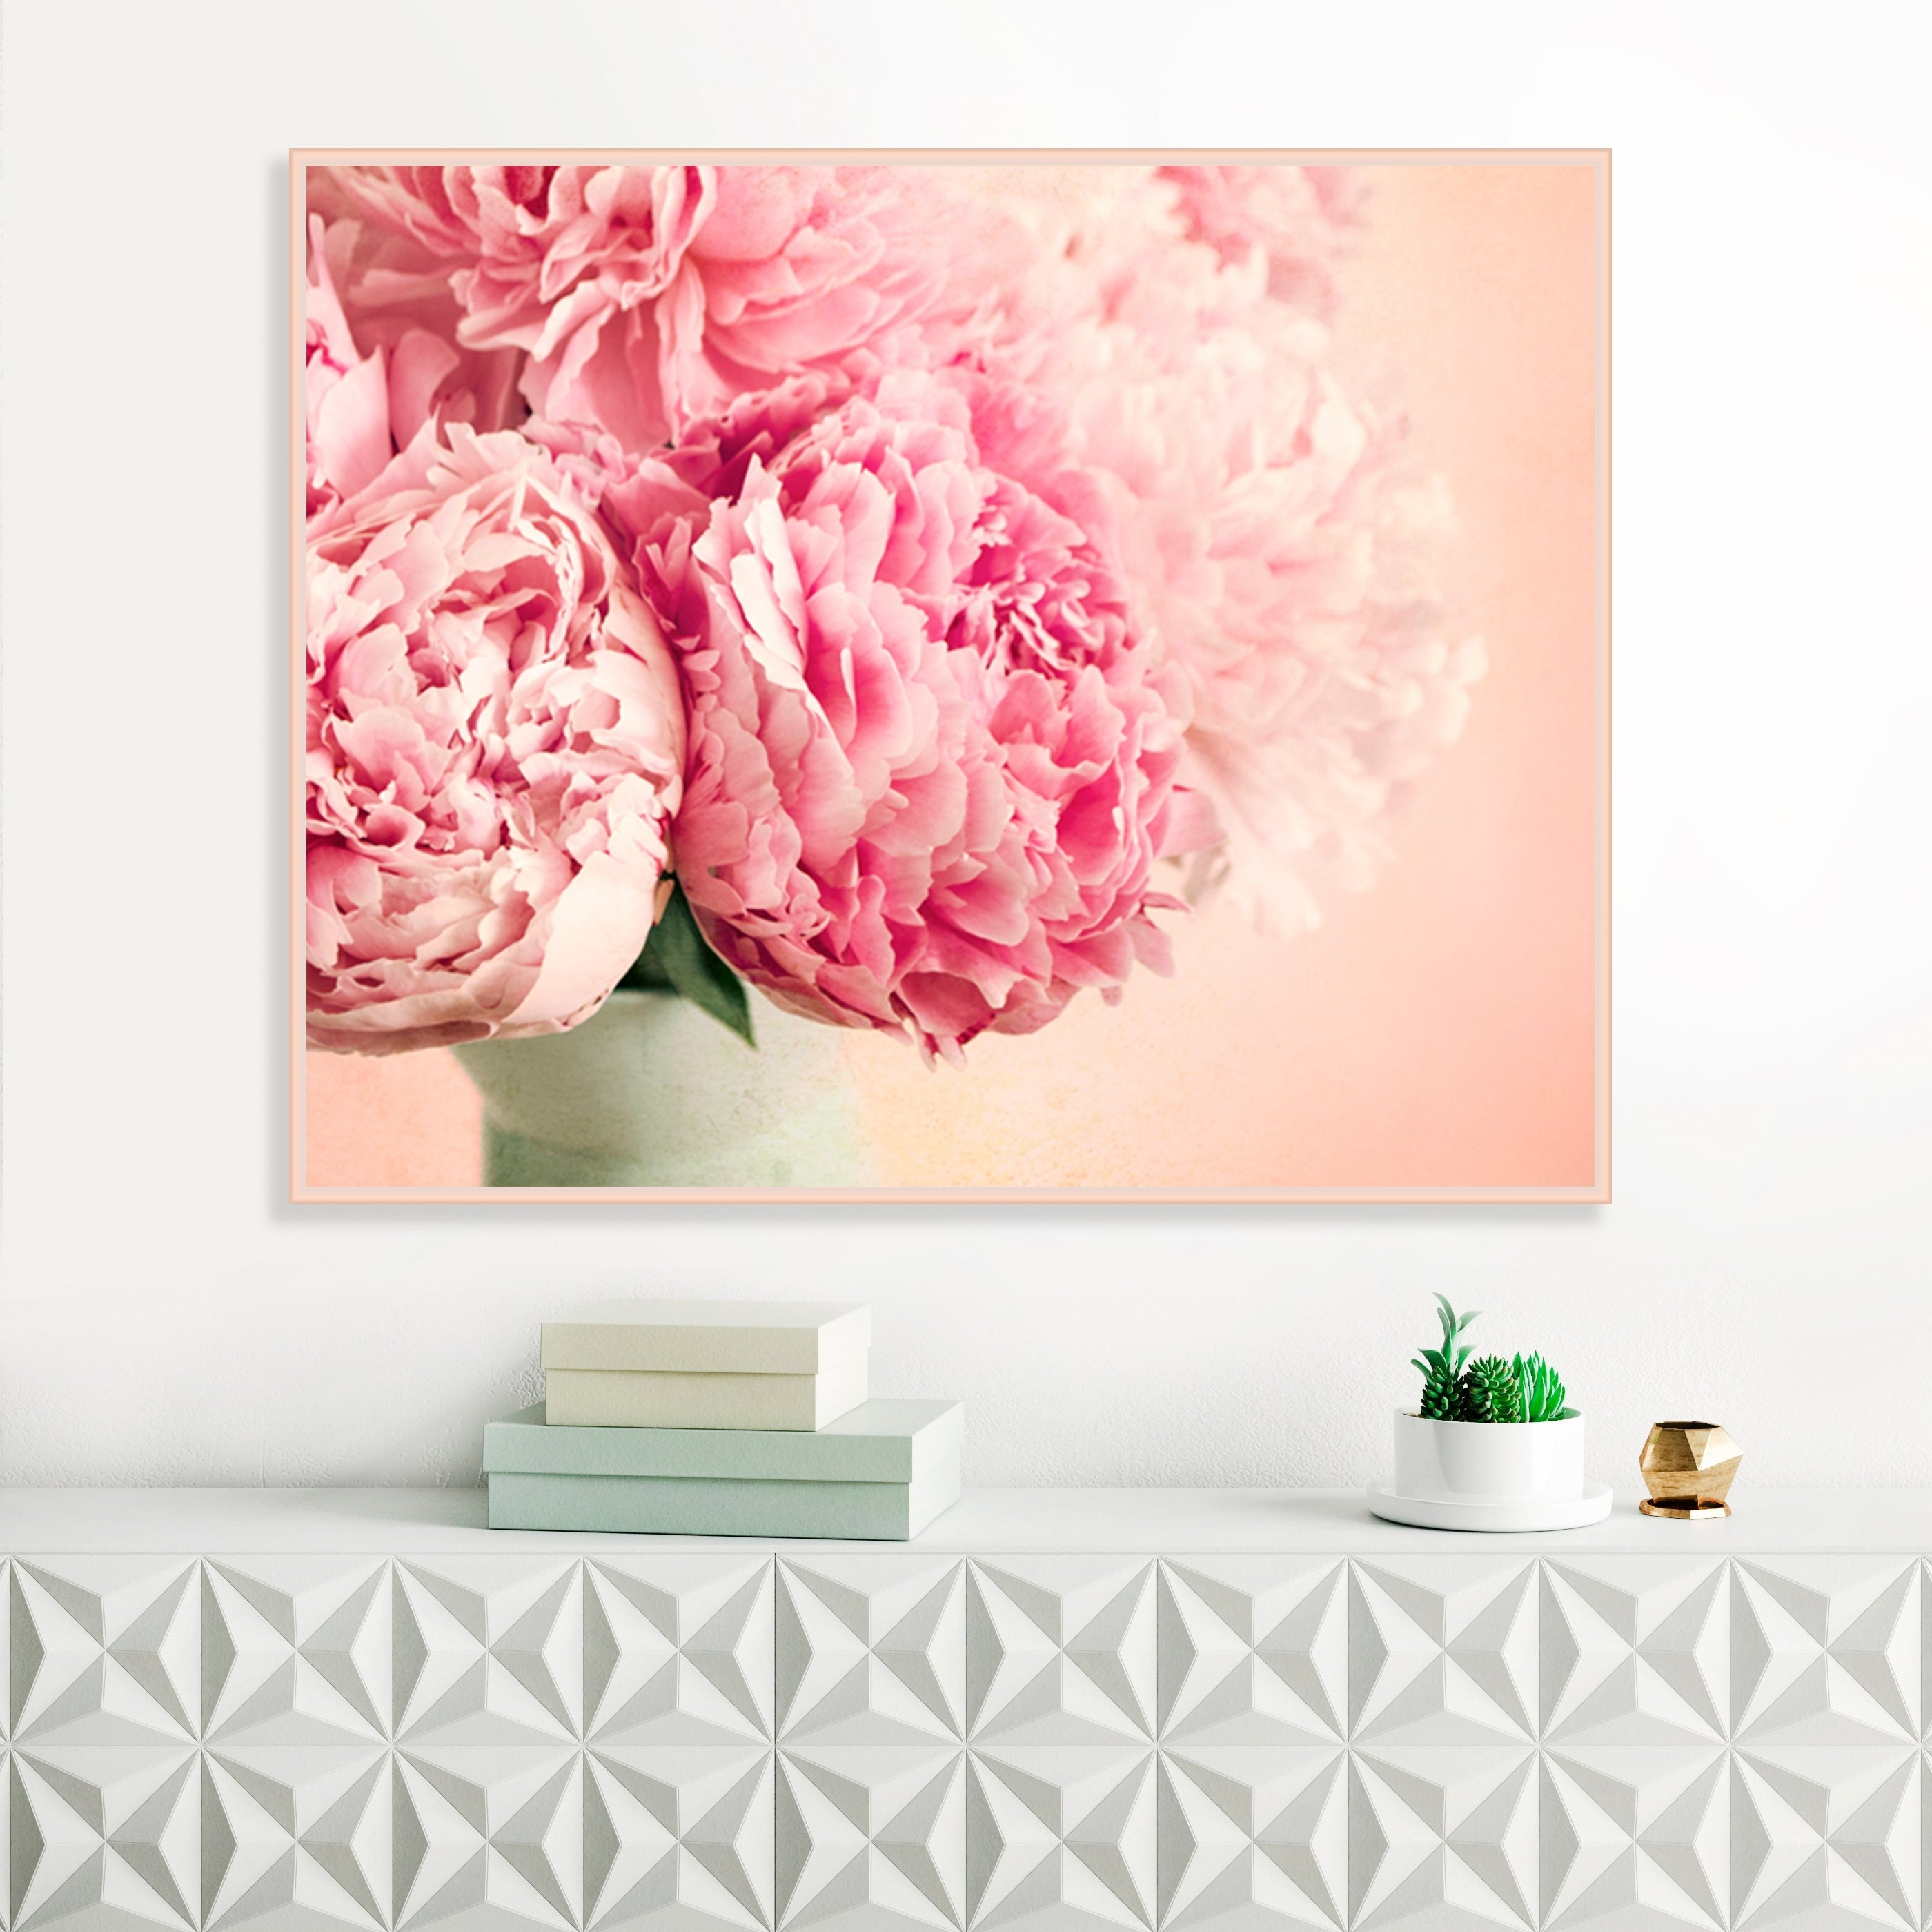 Famous Pink Wall Art With Regard To Pink Peonies, Flower Prints, Blush Pink Wall Art, Peonies Still Life (View 8 of 20)